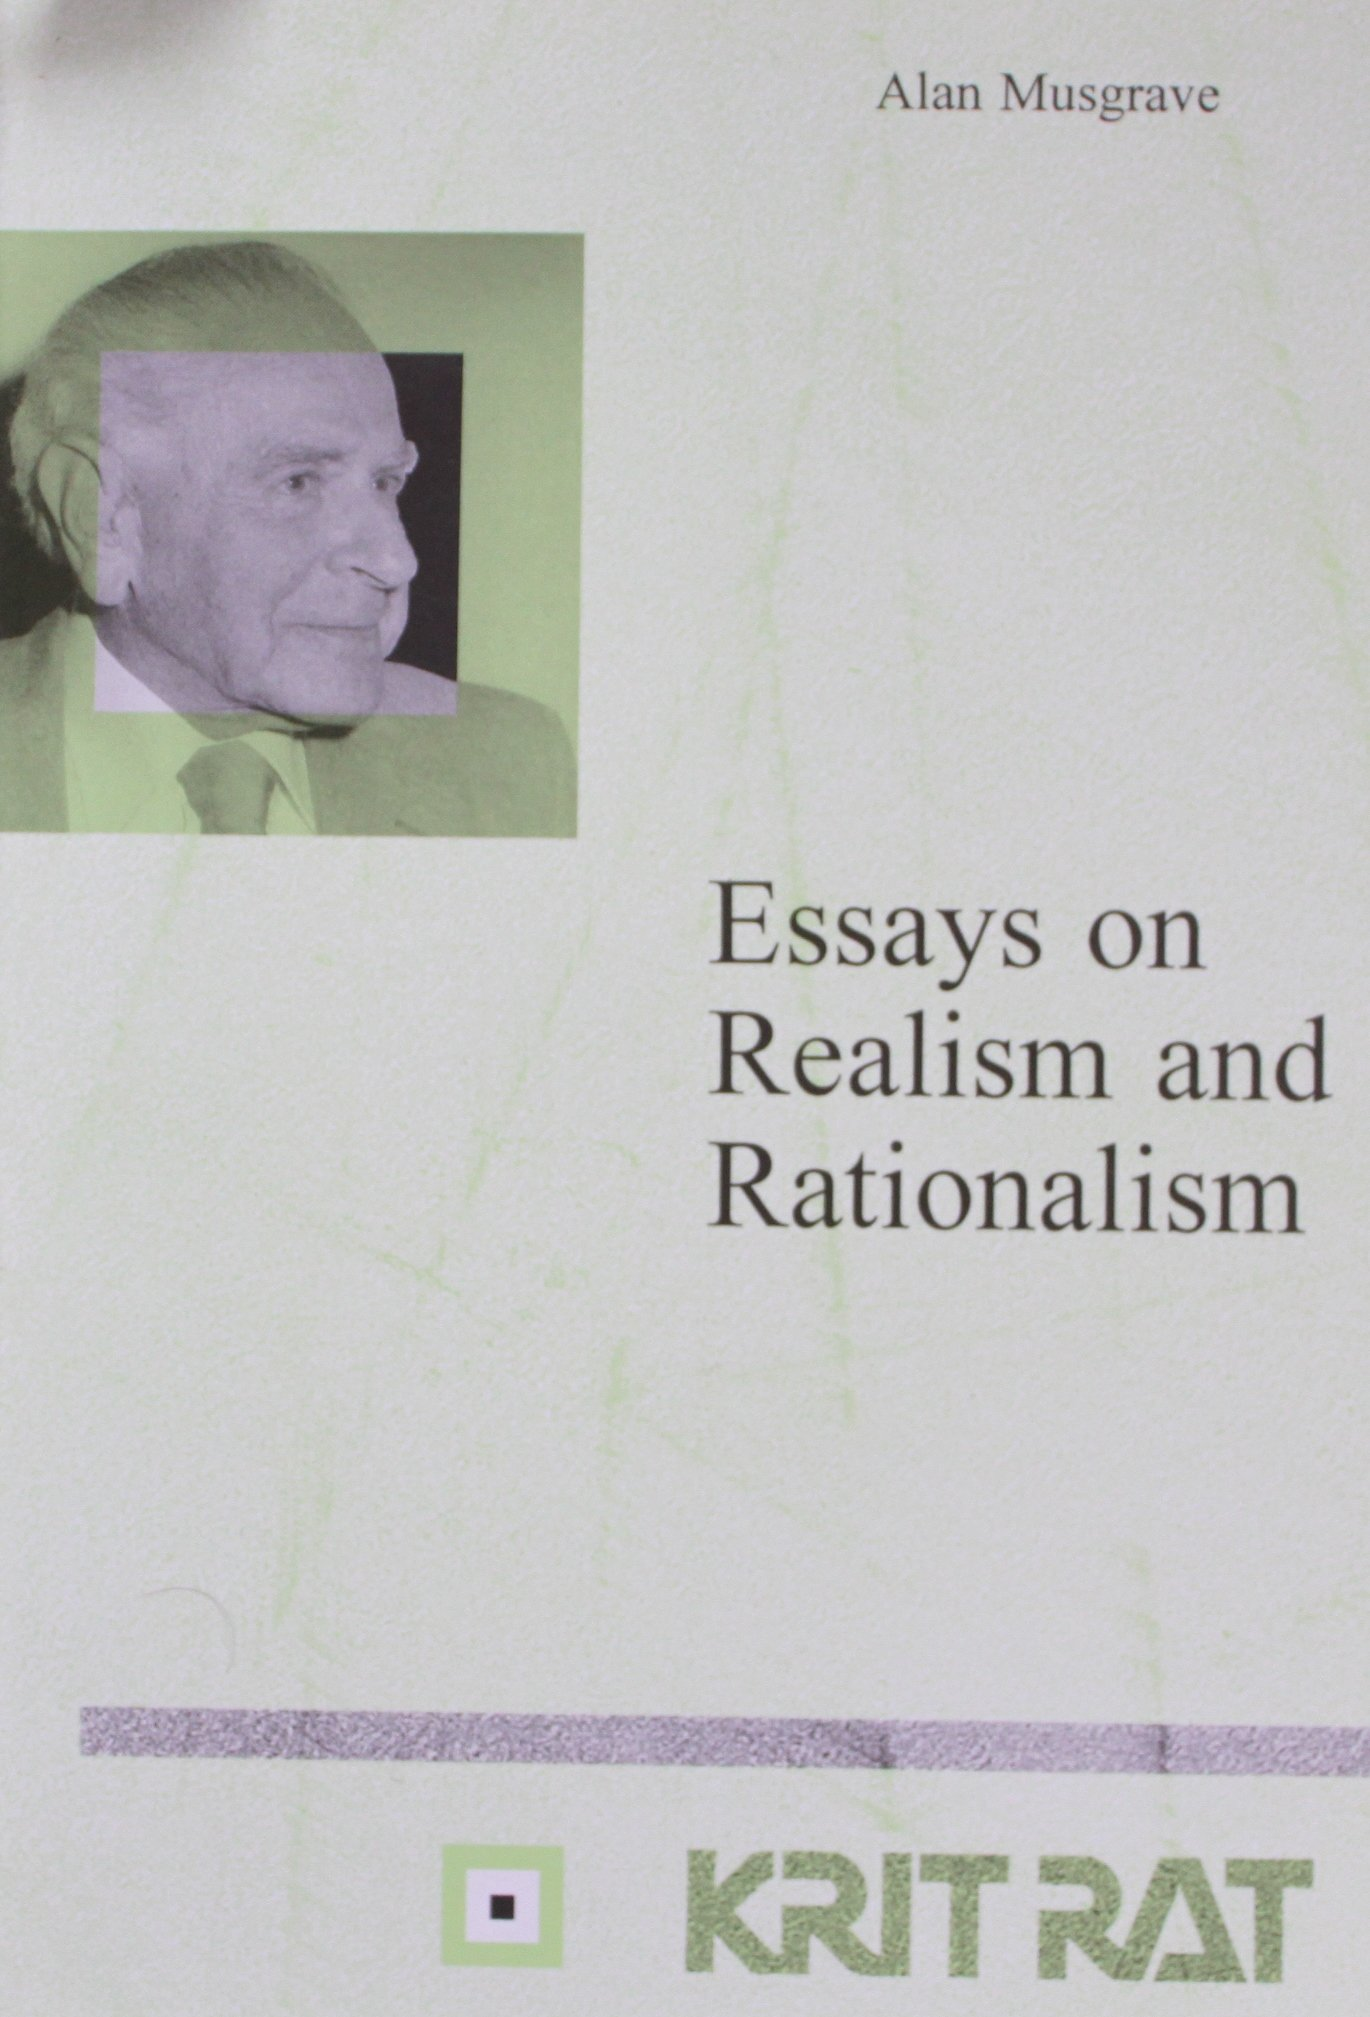 essays on realism r ticism essay essay research direct and  essays on realism and rationalism schriftenreihe zur philosophie essays on realism and rationalism schriftenreihe zur philosophie